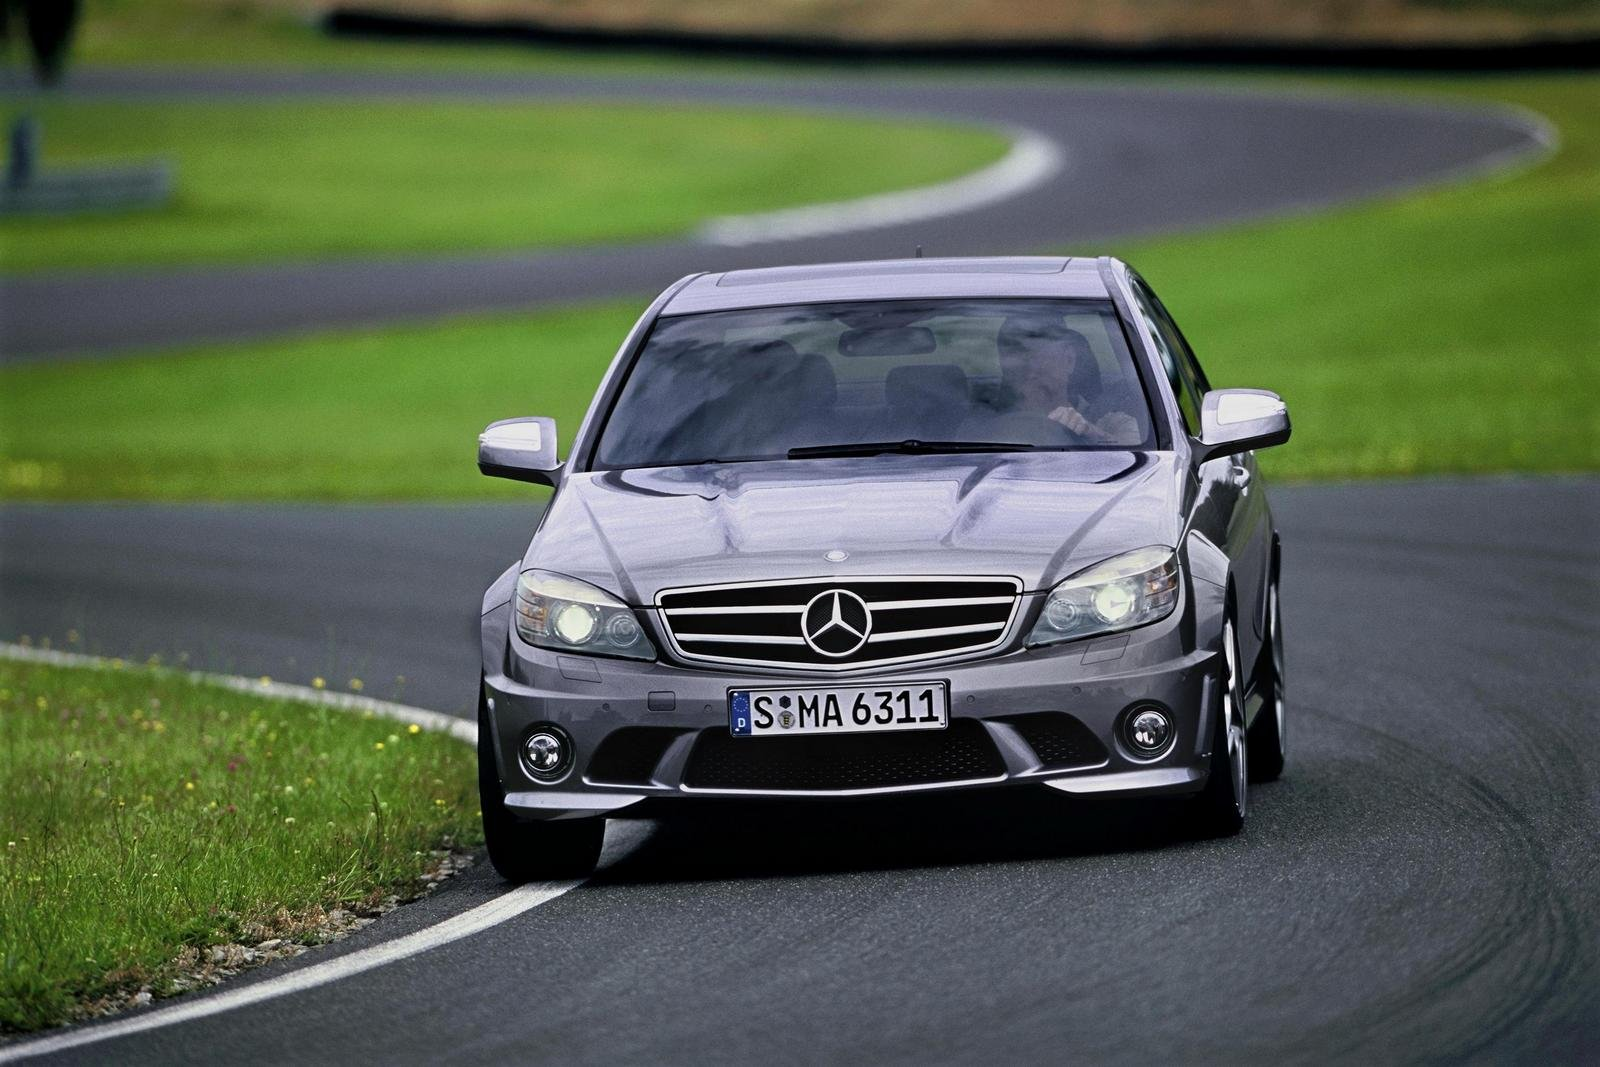 2008 mercedes c63 amg review top speed. Black Bedroom Furniture Sets. Home Design Ideas